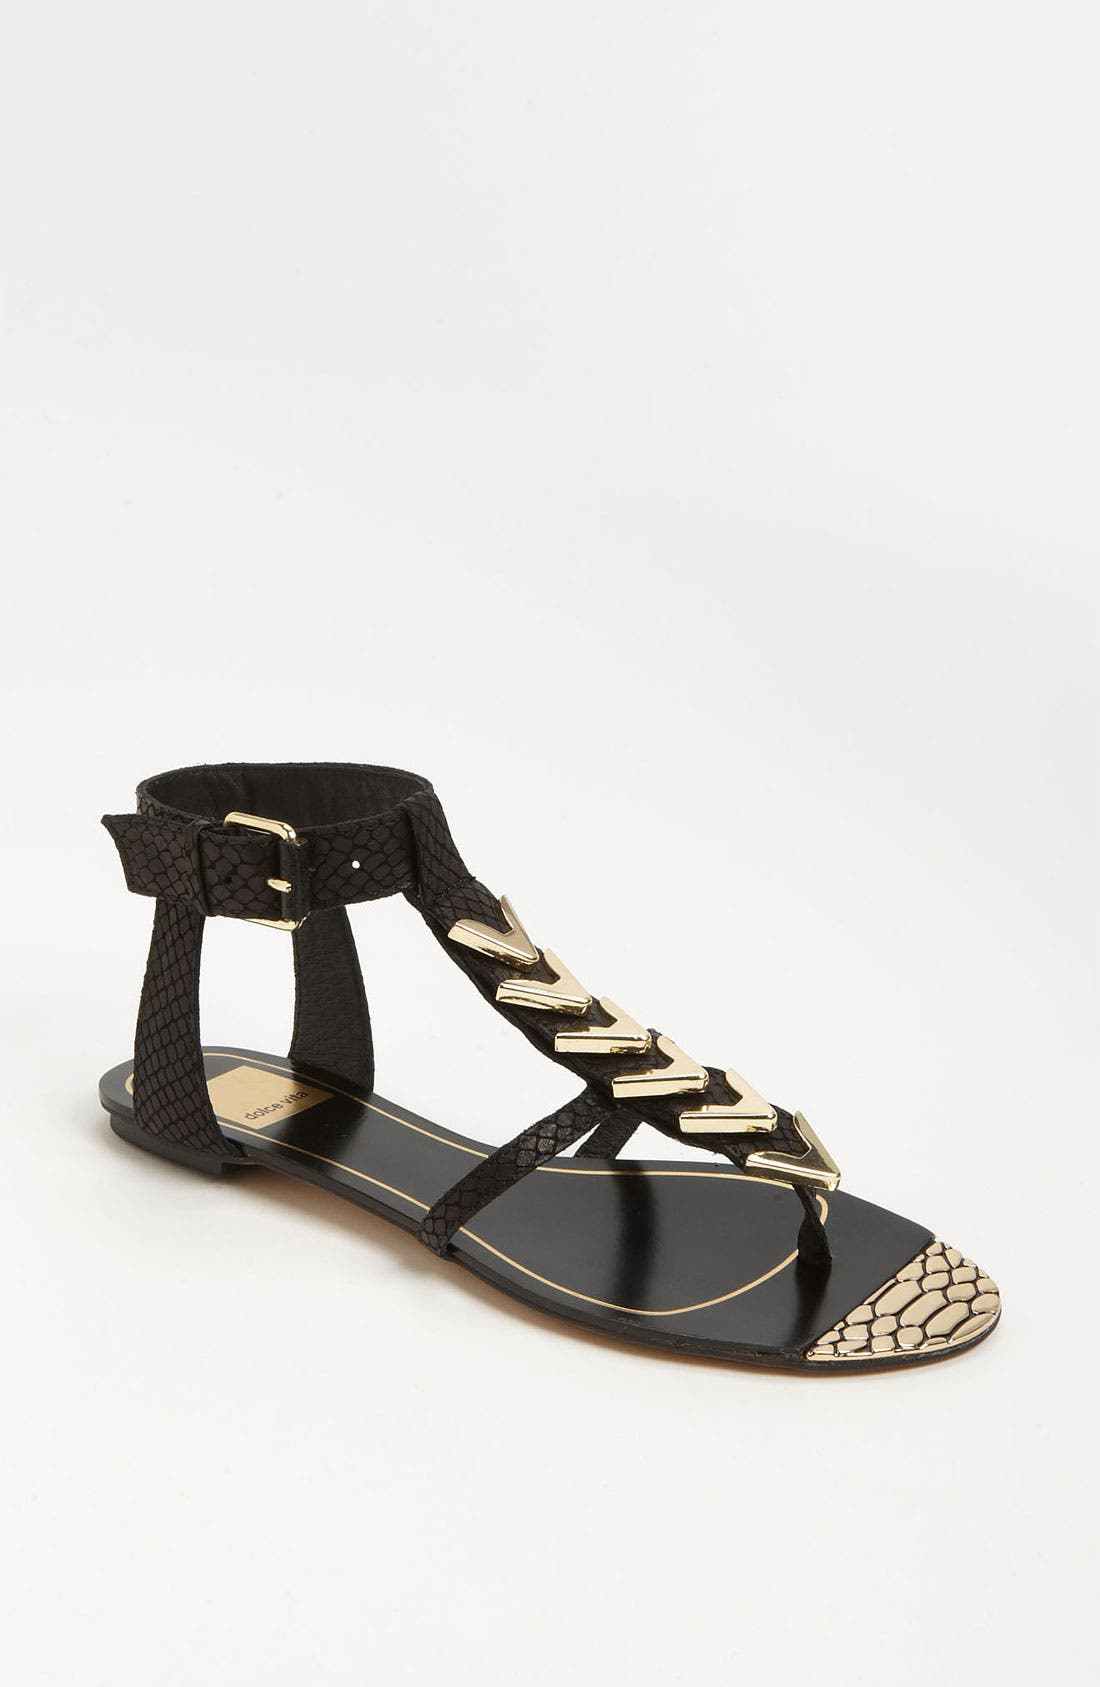 Alternate Image 1 Selected - Dolce Vita 'Izara' Sandal